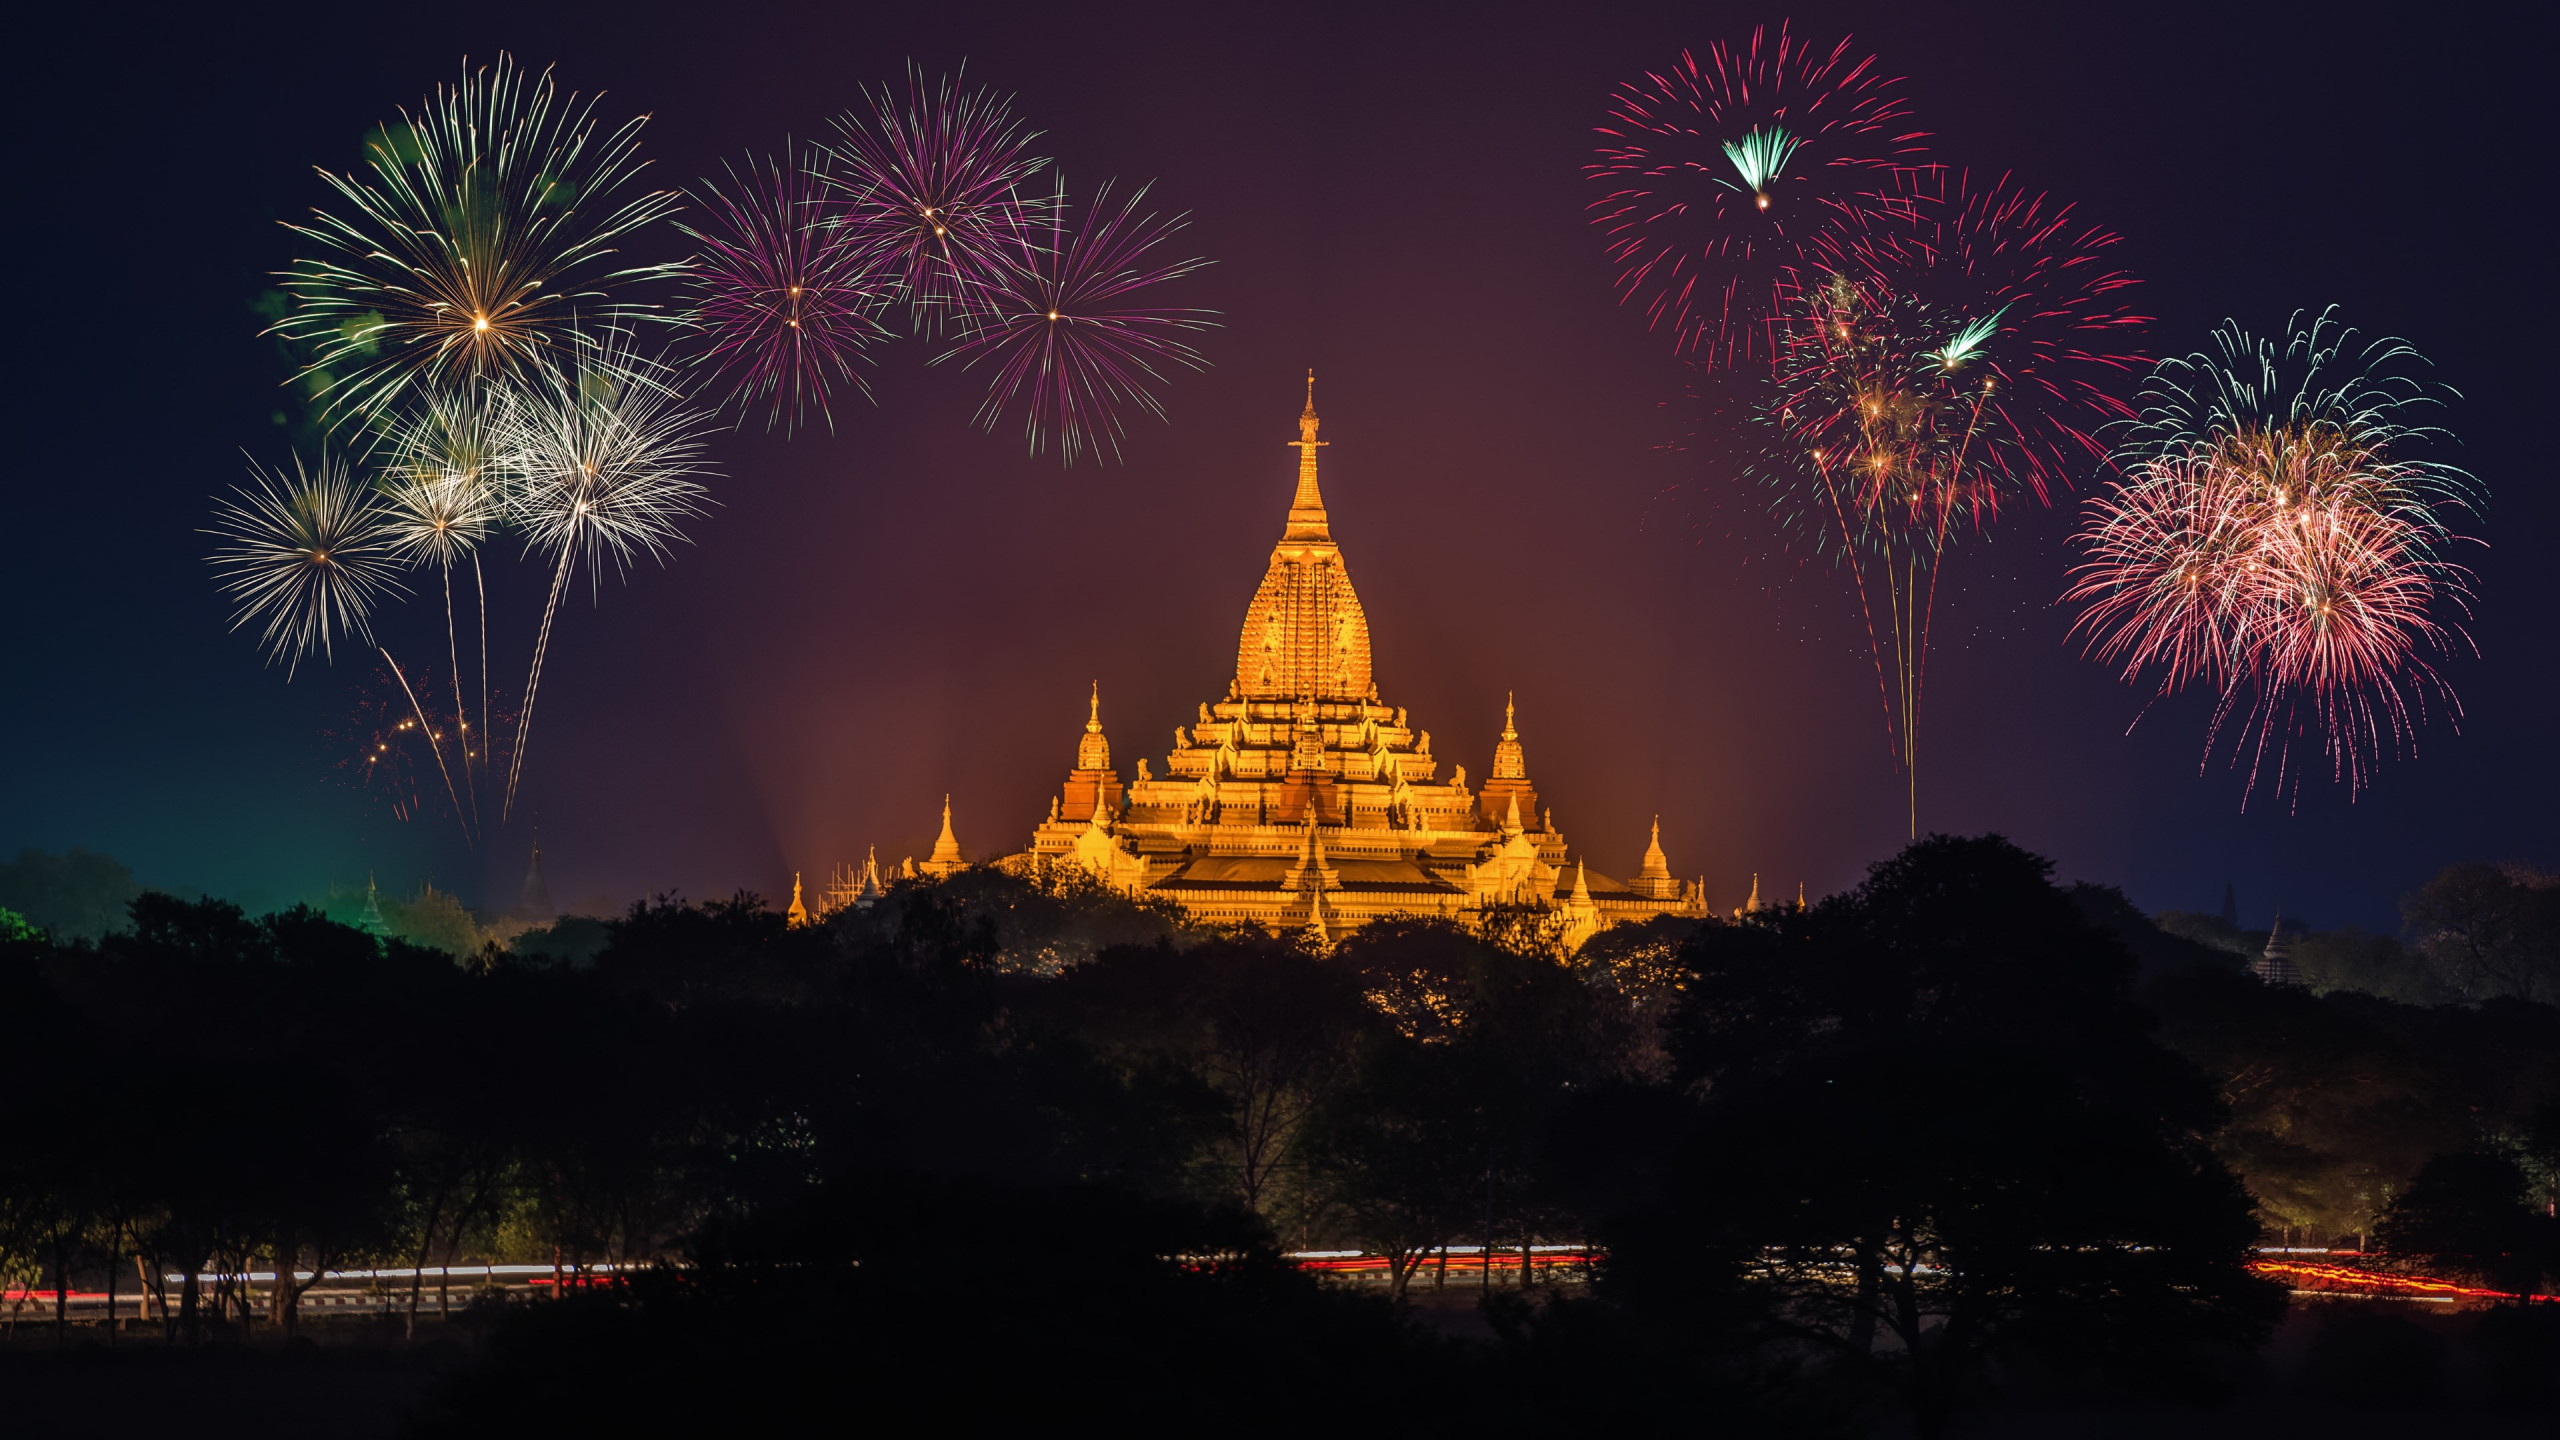 Fireworks above Ananda Phato temple | 2560x1440 wallpaper